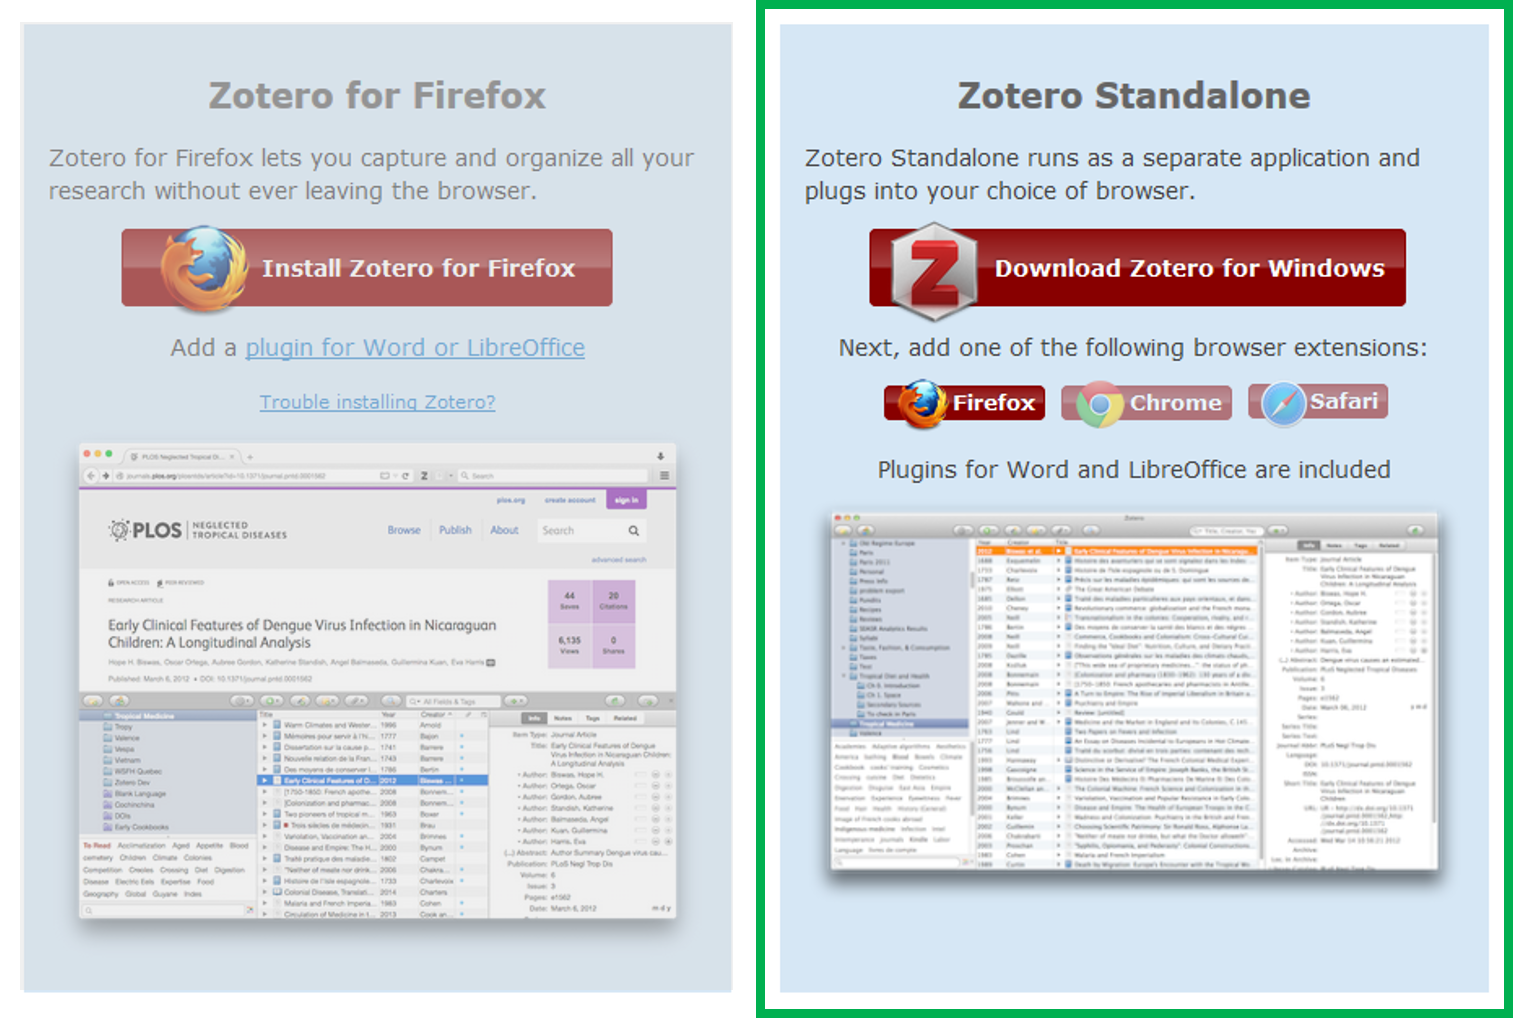 The Zotero download page, highlighting the Zotero Standalone option and blocking out the Zotero for Firefox option.